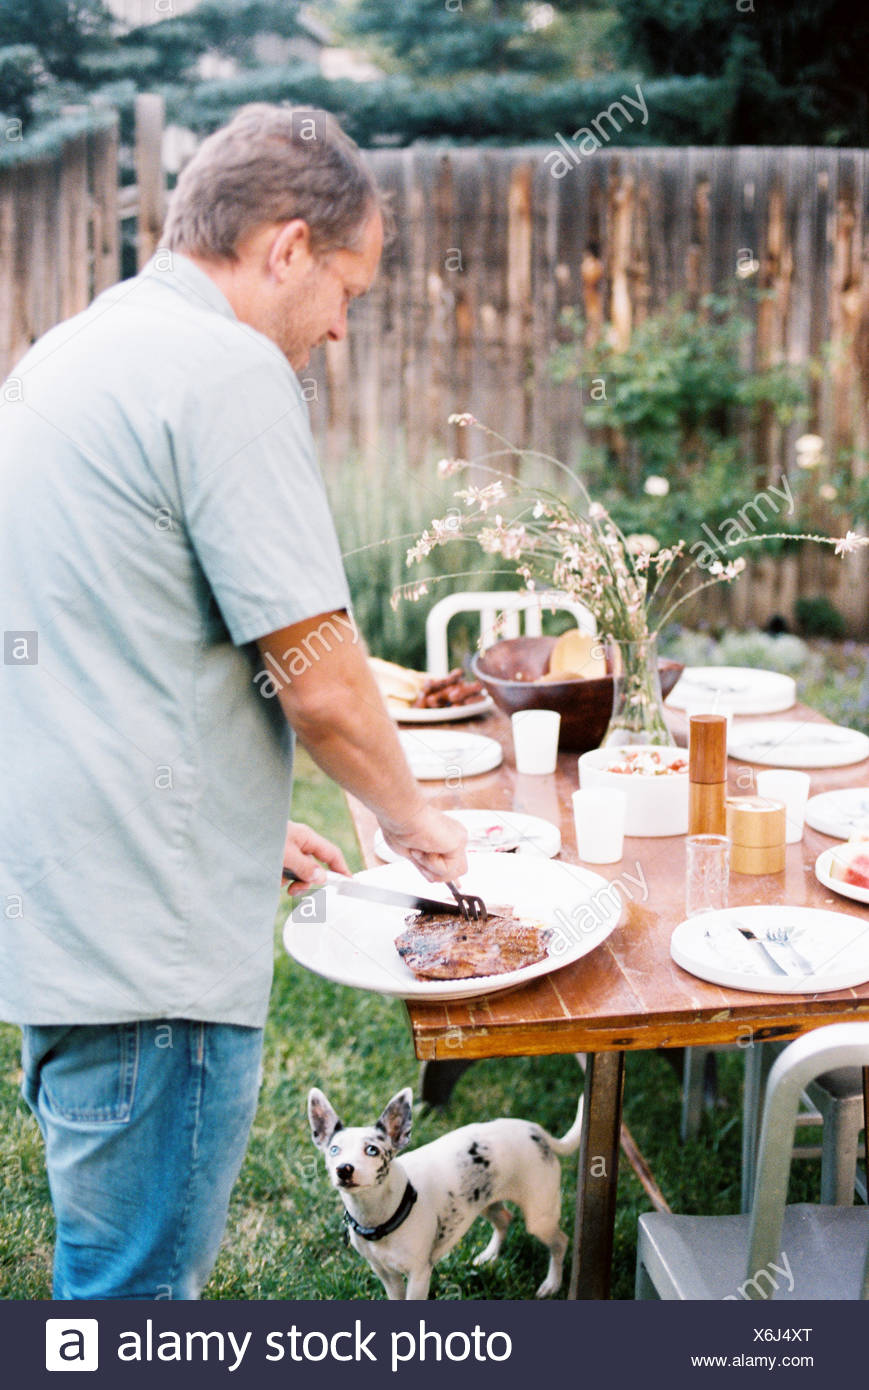 A man carving meat at a family meal in a garden, being watched by a small dog under the table. - Stock Image